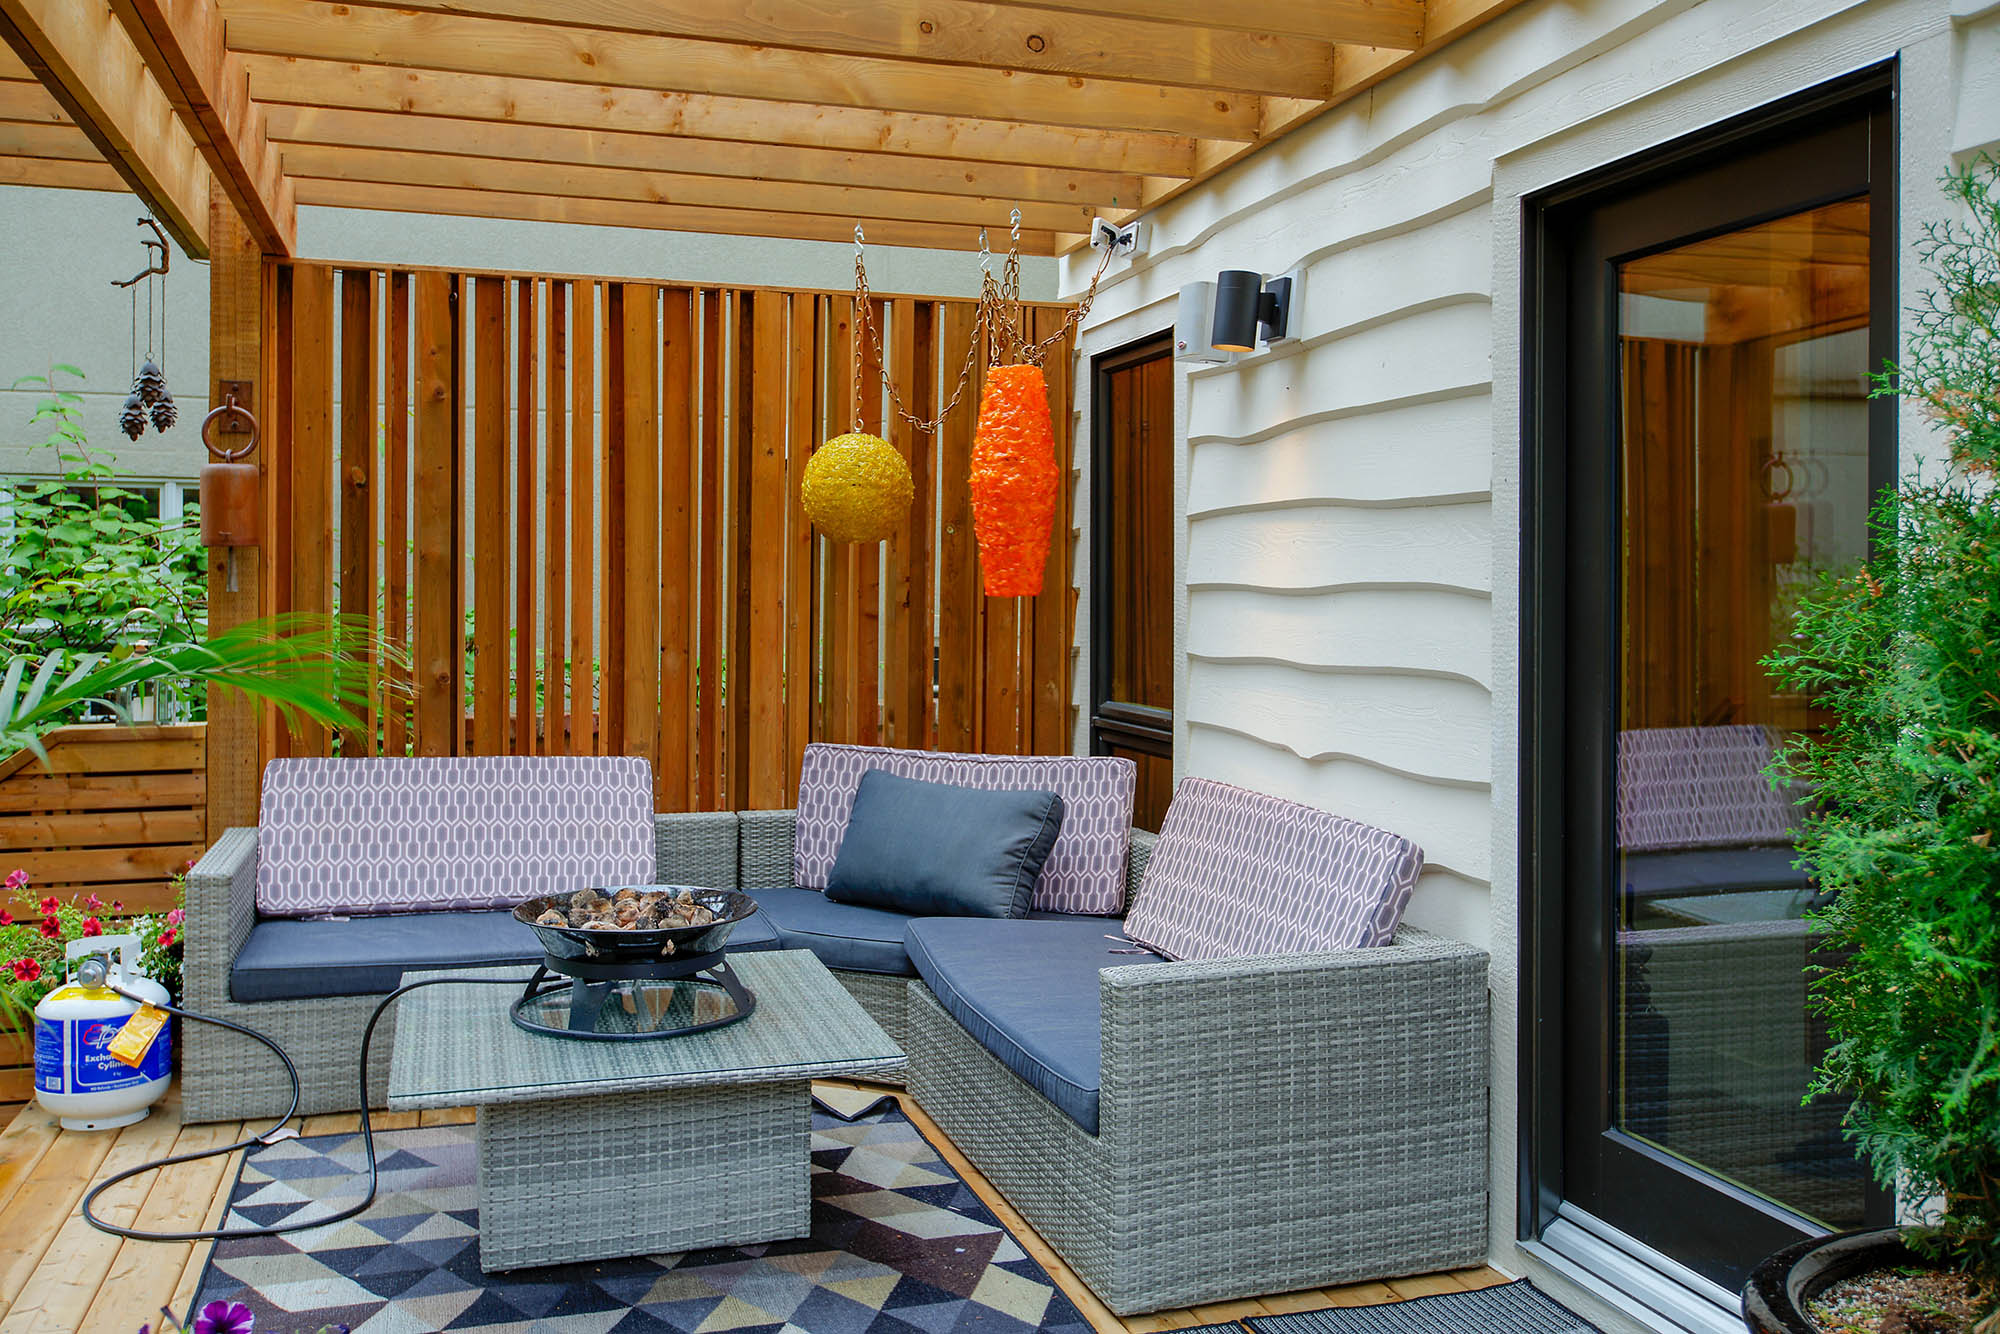 Suite Home Renovations - Deck with privacy screen and pergola